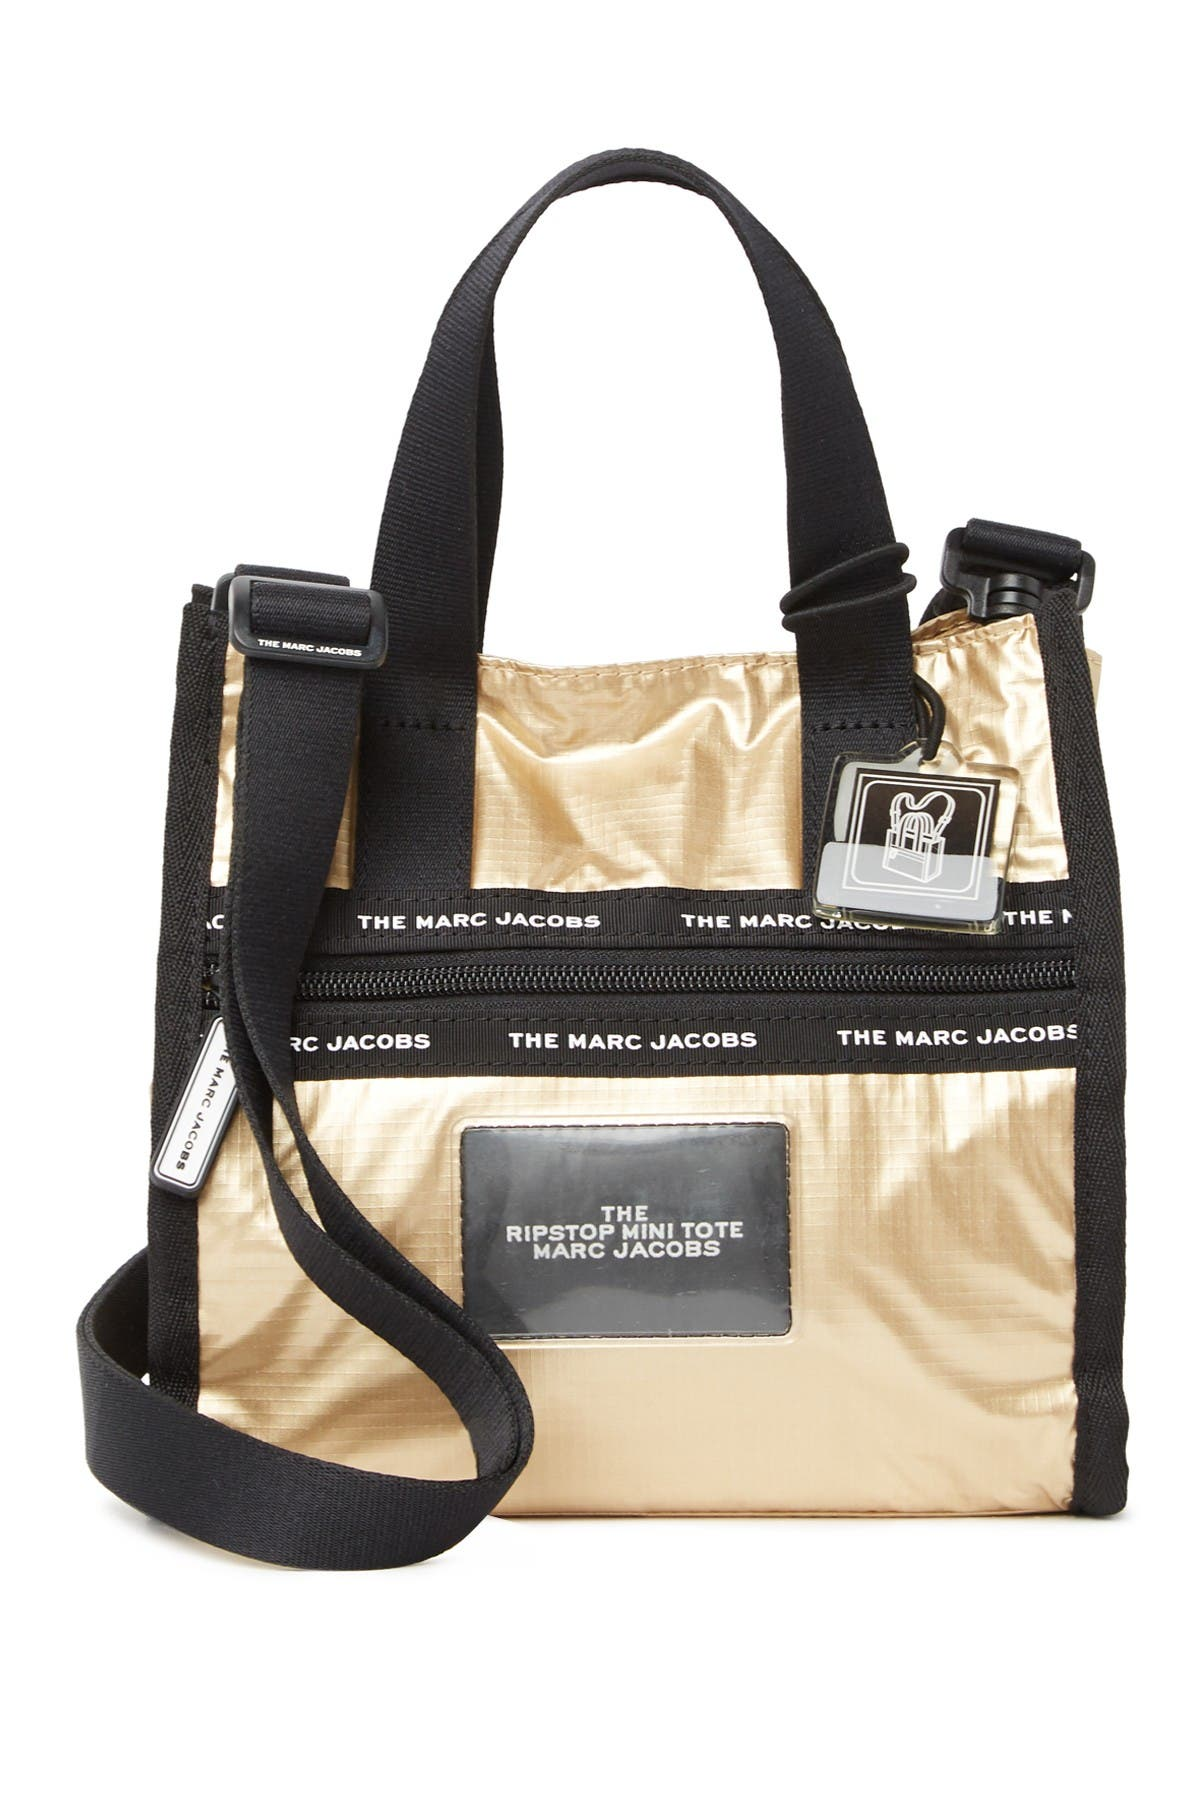 Marc Jacobs | The Ripstop Mini Tote Bag | Nordstrom Rack